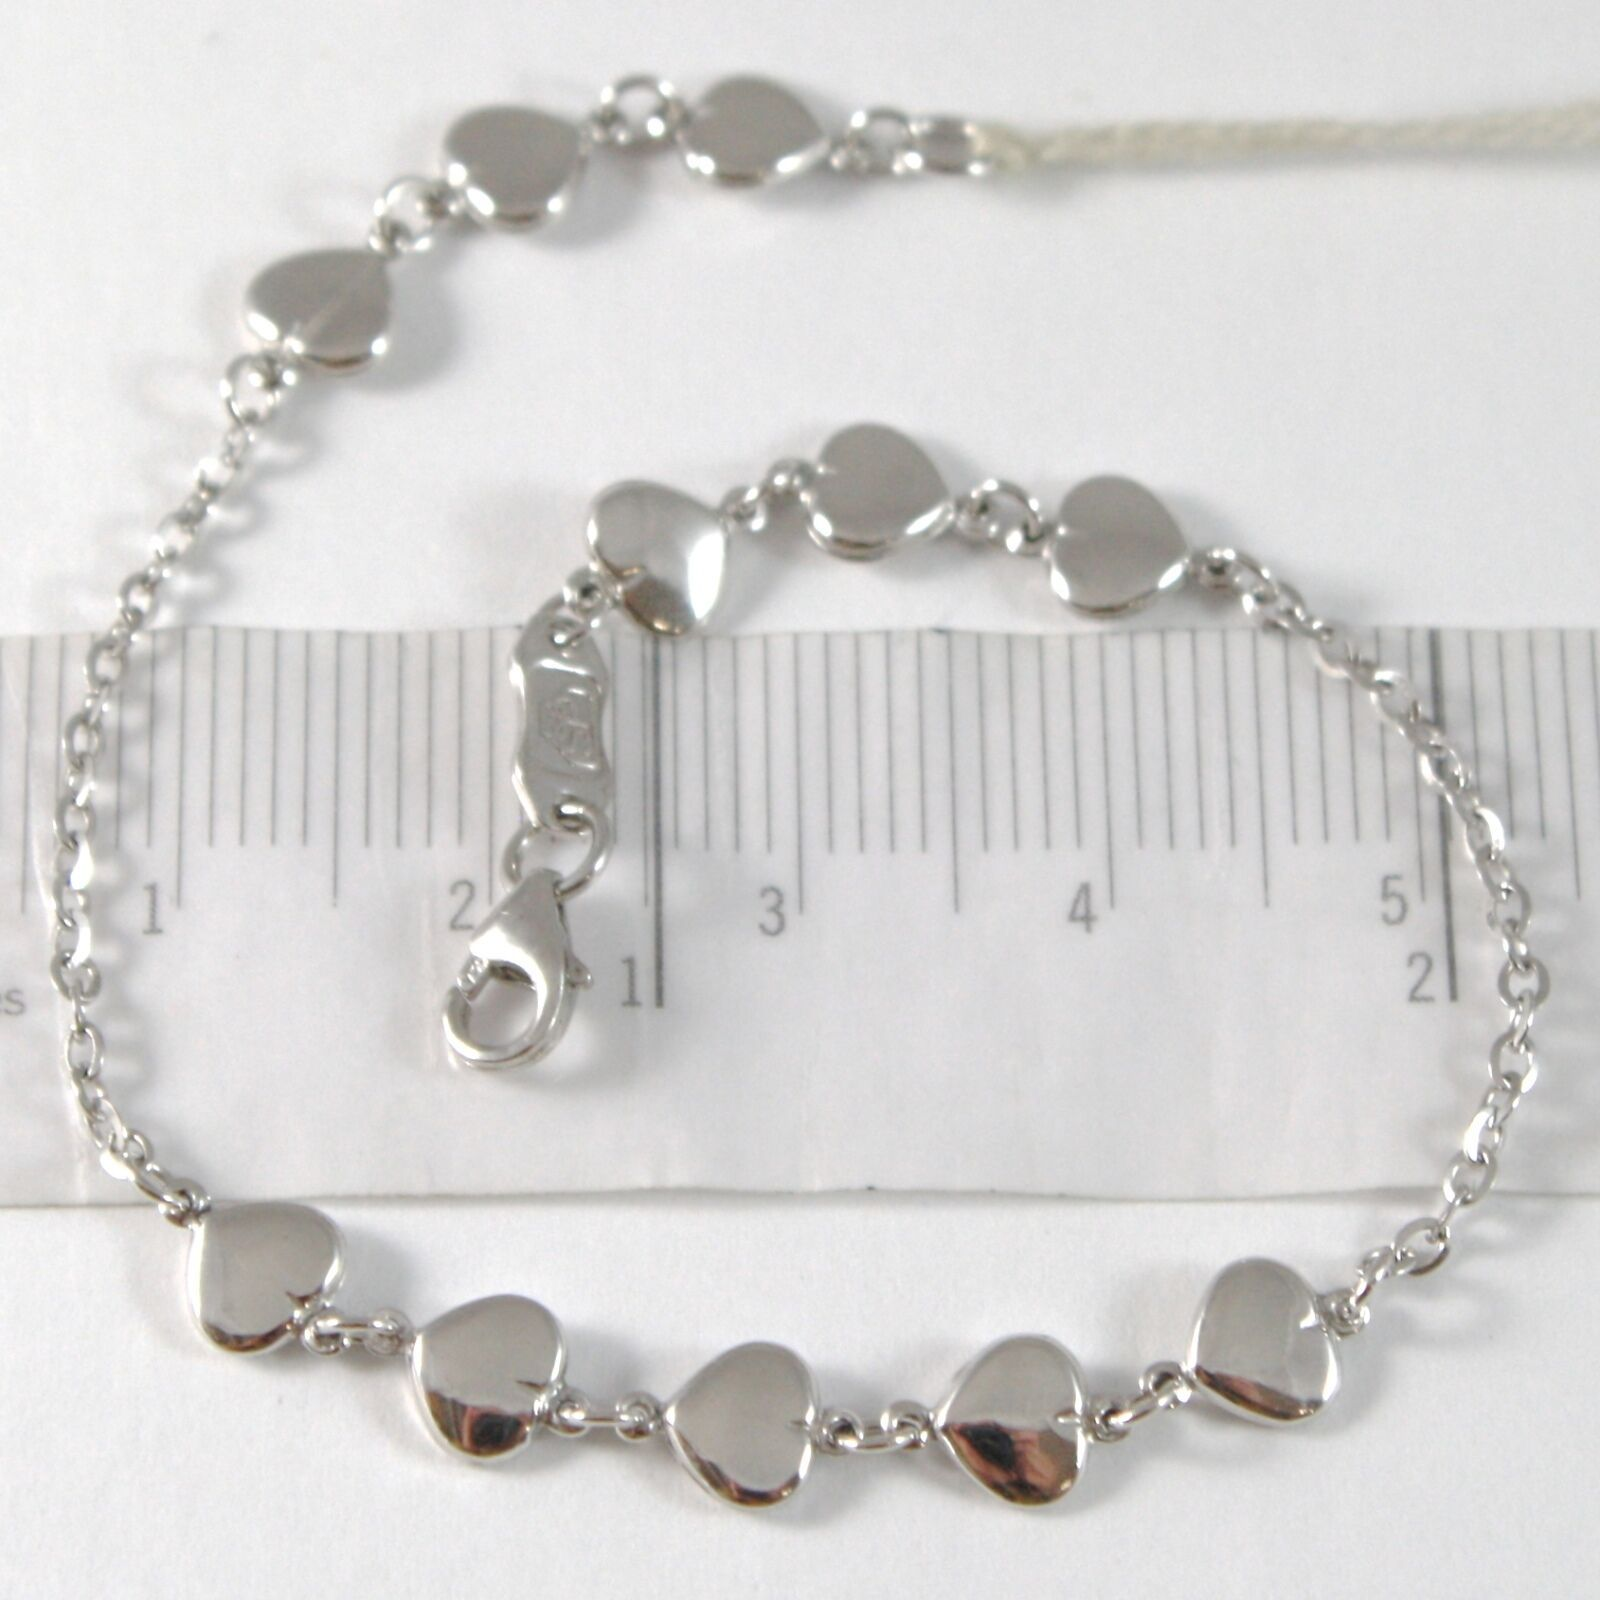 White Gold Bracelet 750 18K with File of Hearts, Heart, Length 18 CM